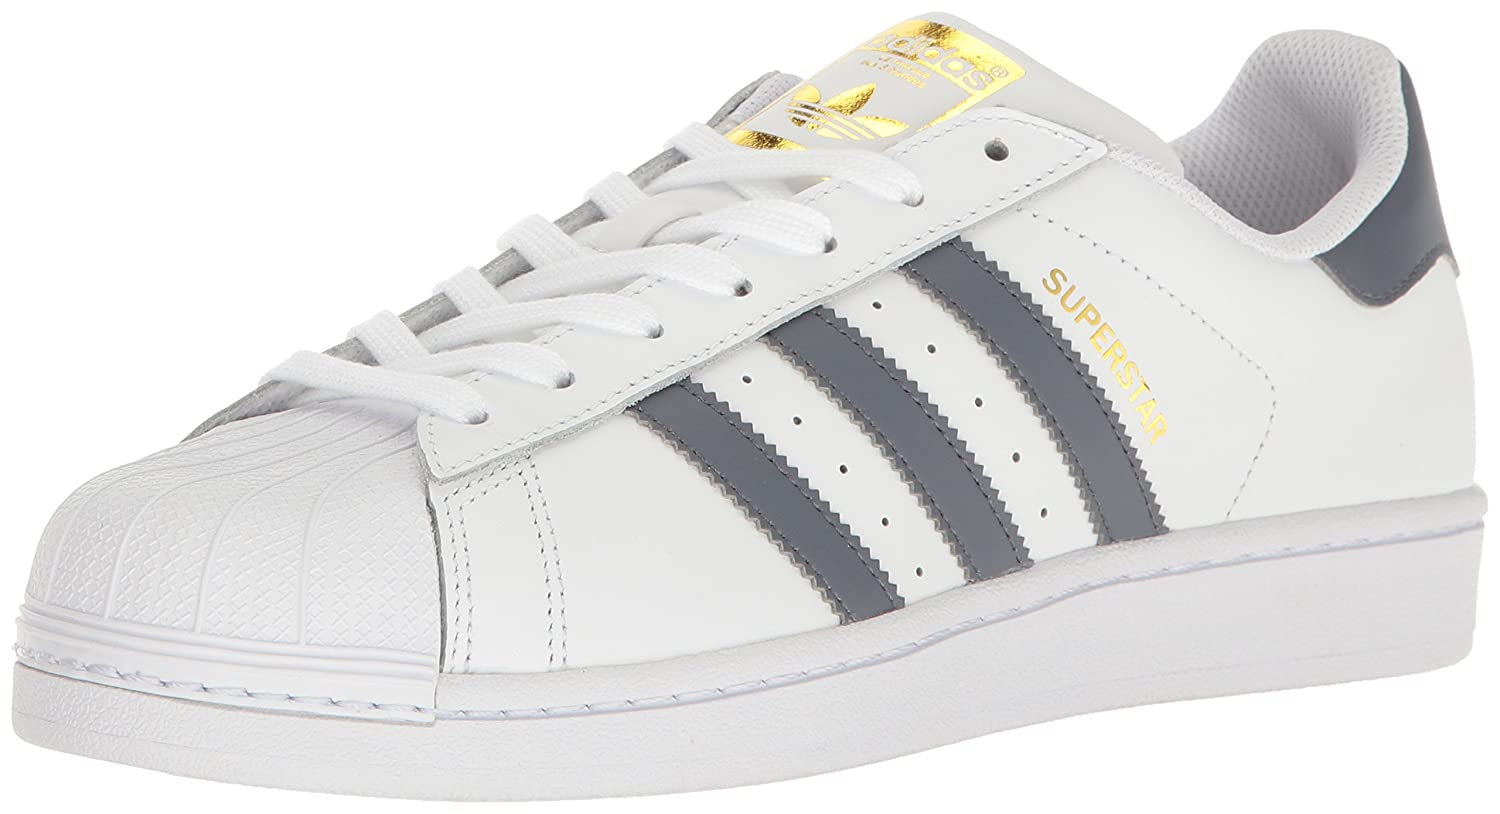 check out e76f5 11a3c Amazon.com   adidas Originals Women s Superstar Shoes Running   Fashion  Sneakers